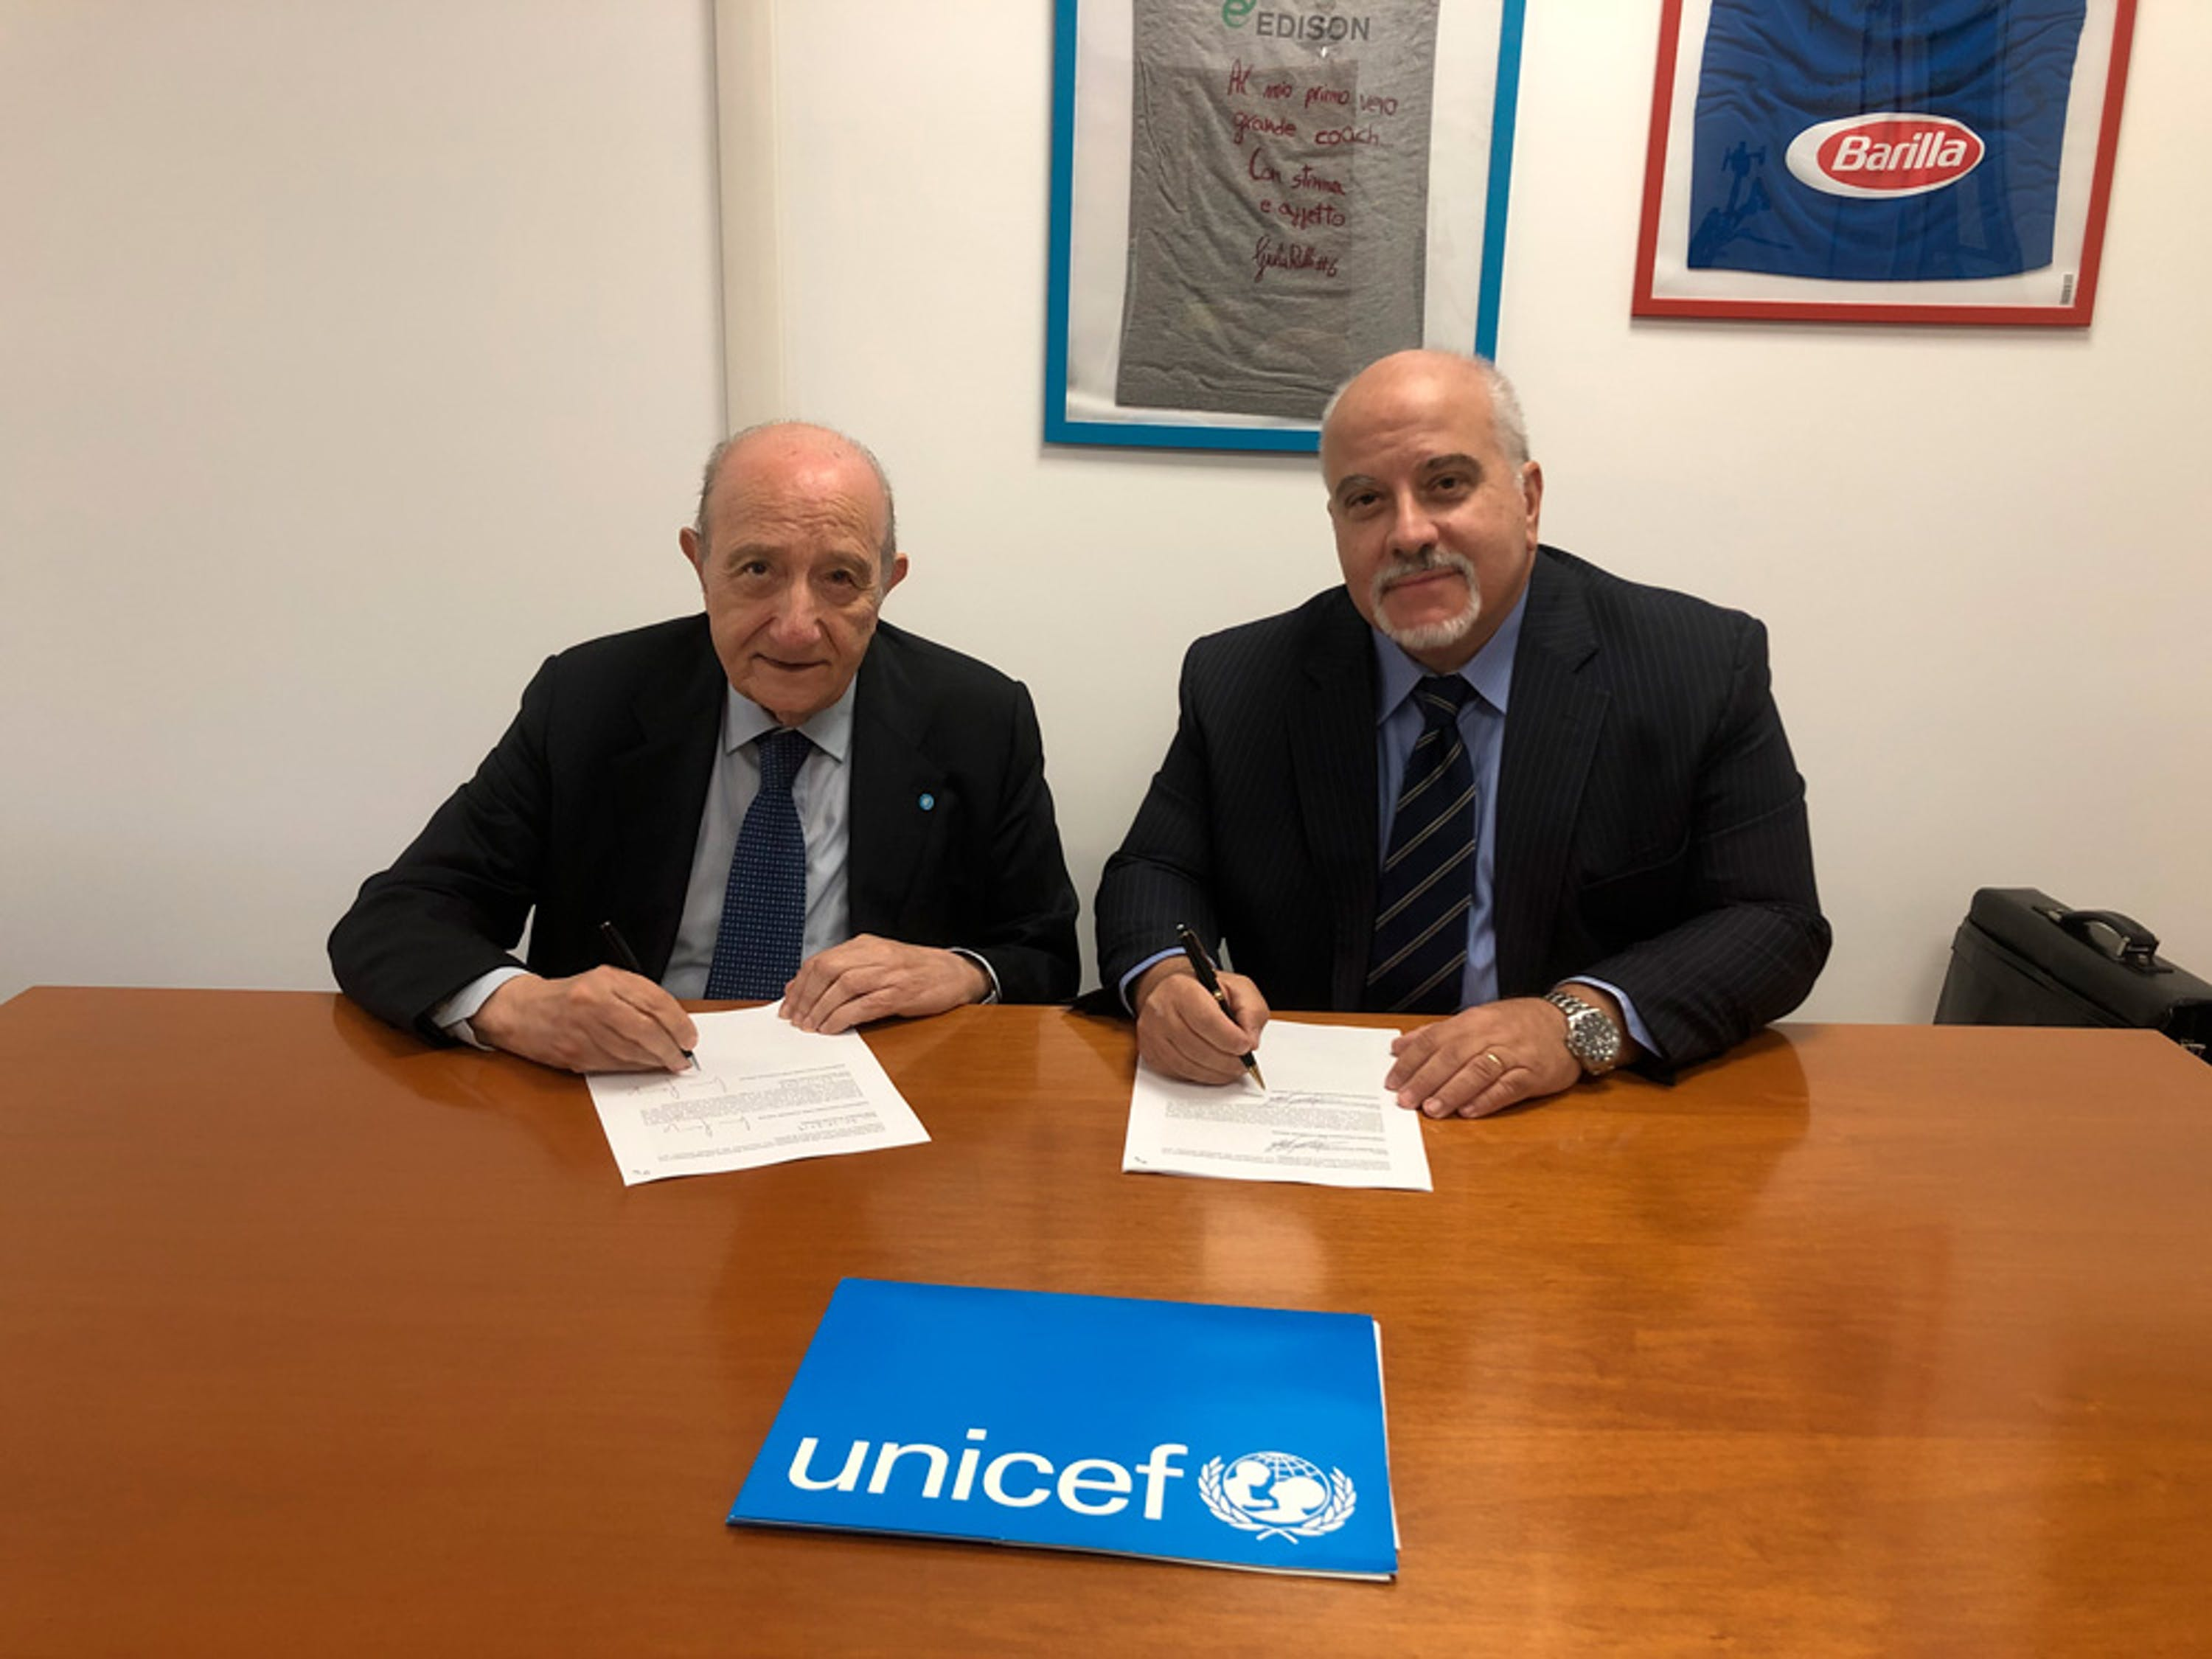 I presidenti di UNICEF Italia Samengo e Club Basket Frascati Monetti durate la firma dell'accordo - © UNICEF